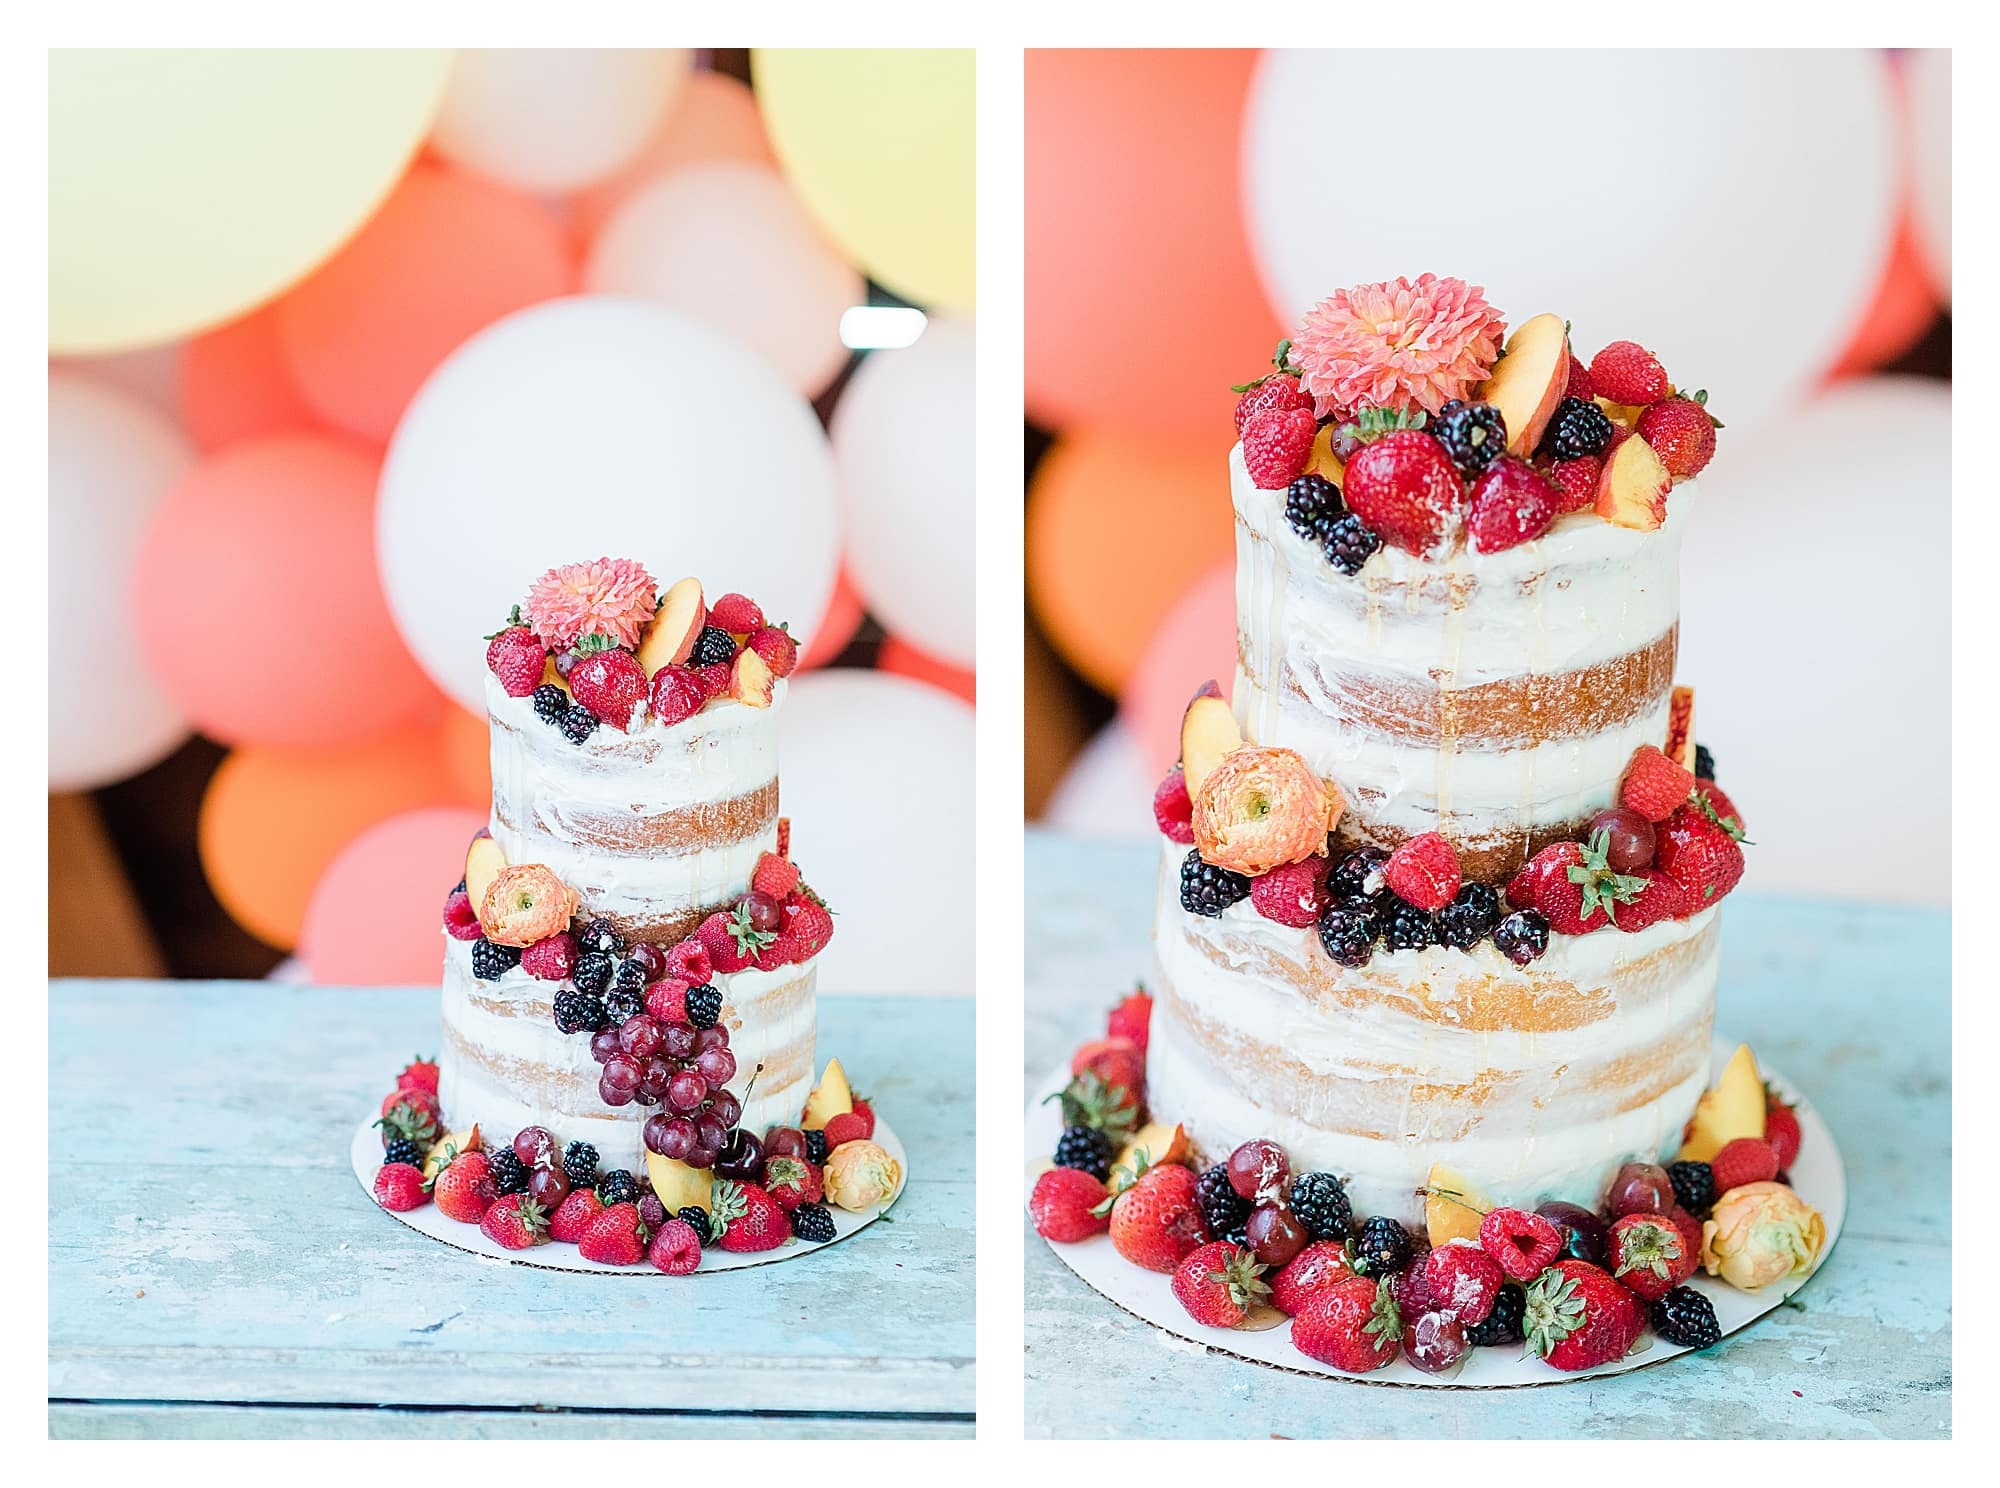 White two layer wedding cake with ring of berries around each layer and on top and drizzled with honey